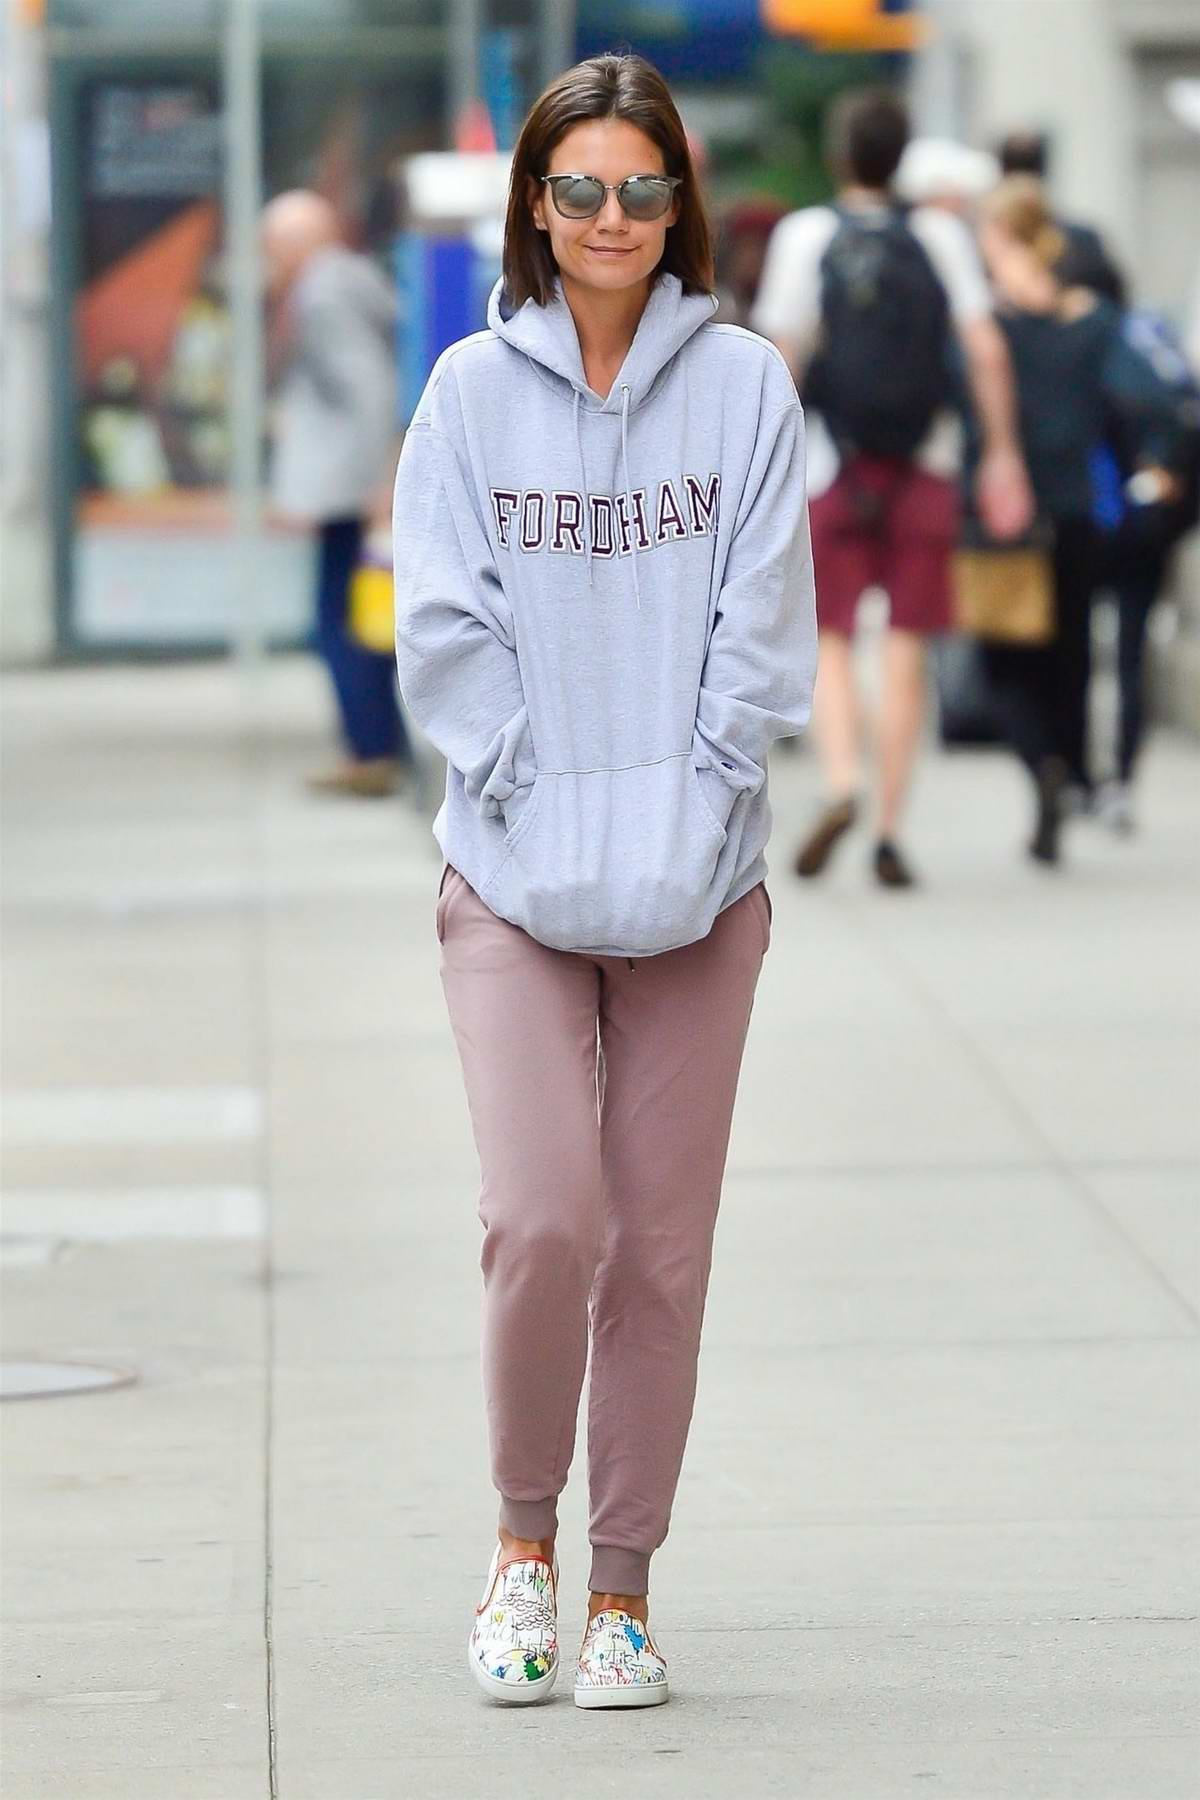 Katie Holmes keeps it comfy in a hoodie and sweatpants while out in New York City